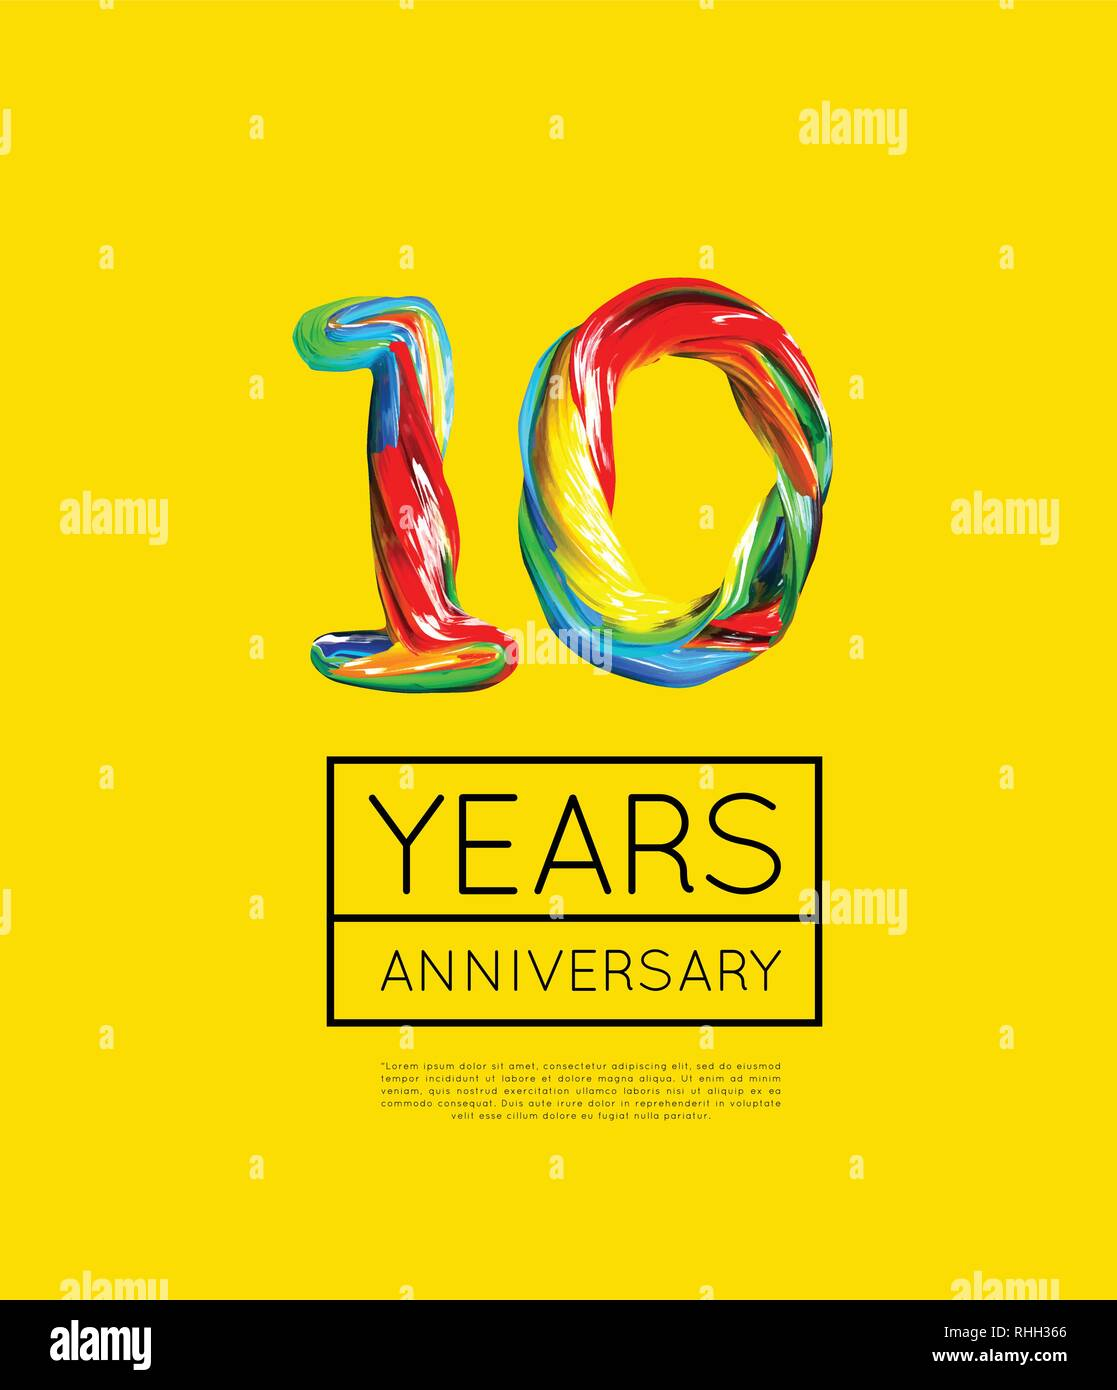 10th Anniversary, congratulation for company or person on yellow background. Vector - Stock Vector